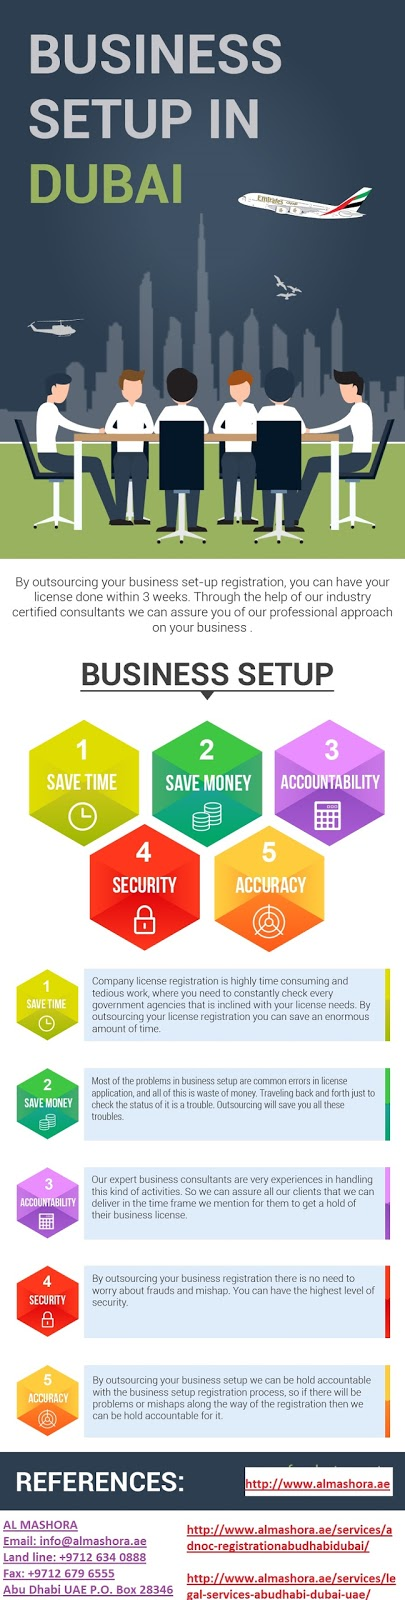 Business setup in abudhabi,dubai,uae